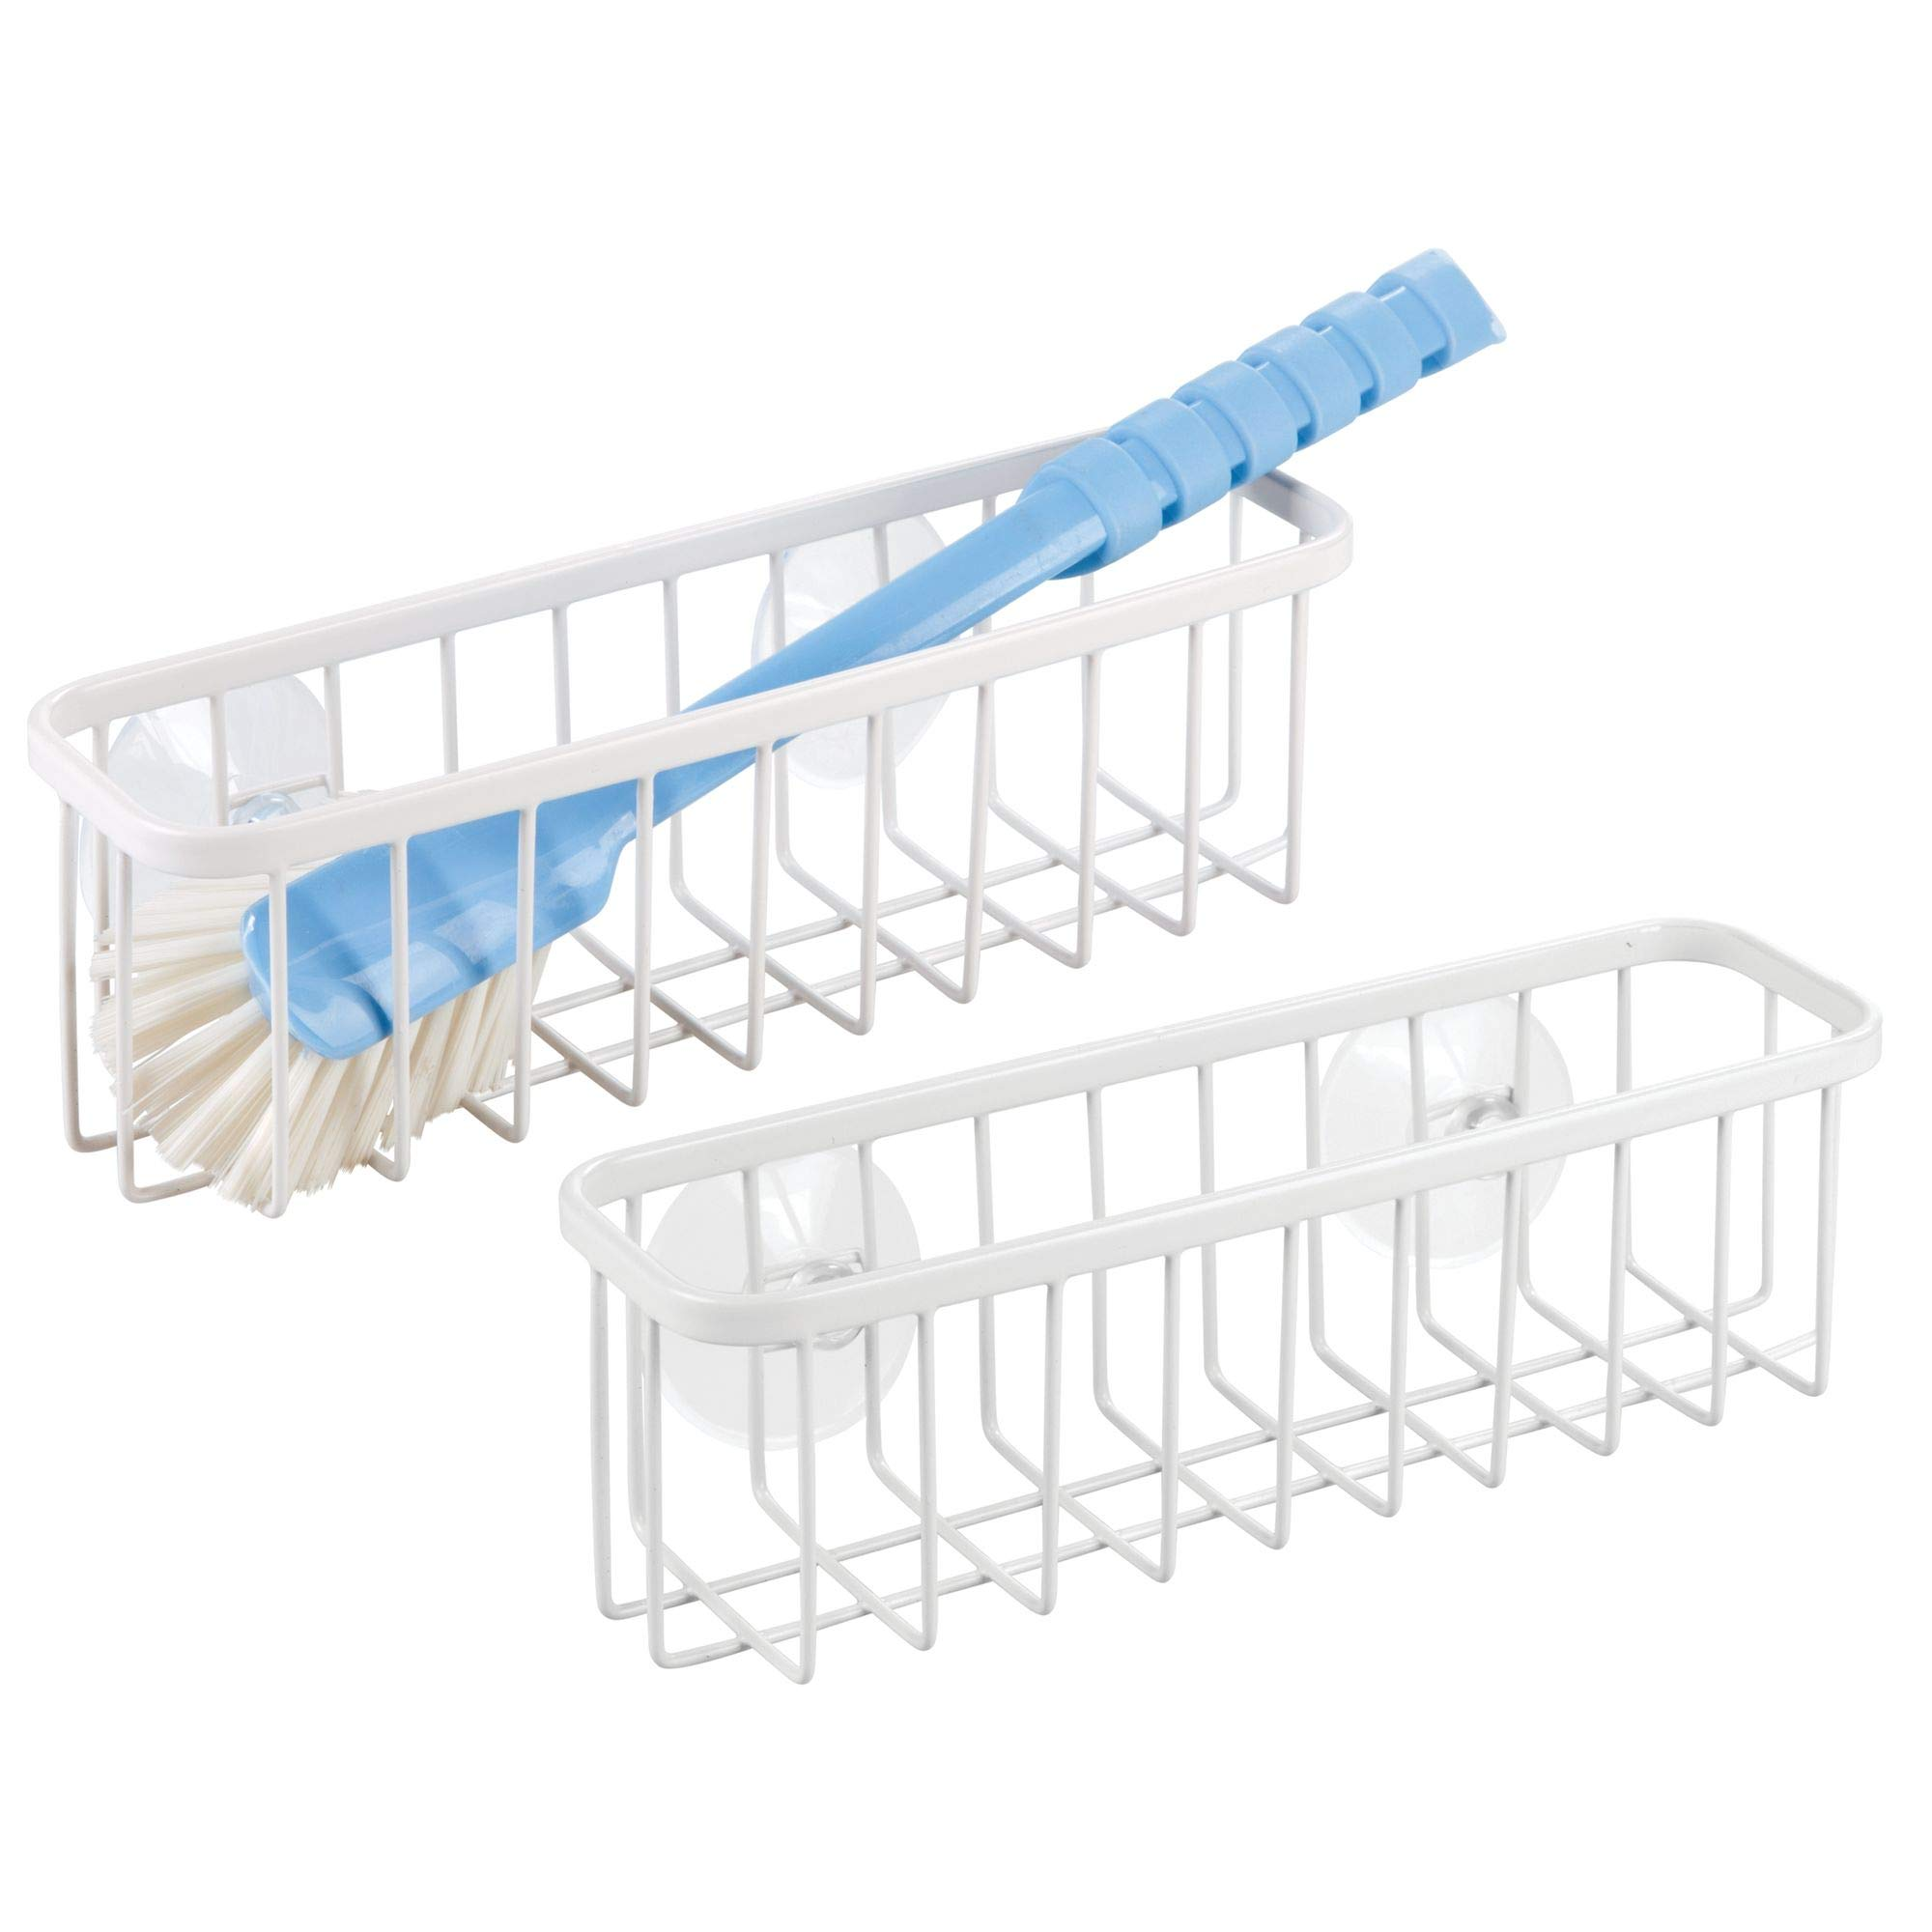 mDesign Kitchen Sink Suction Storage Basket for Sponges, Soap, Scrub Brushes,Scrubbies - Pack of 2, XL, Matte White